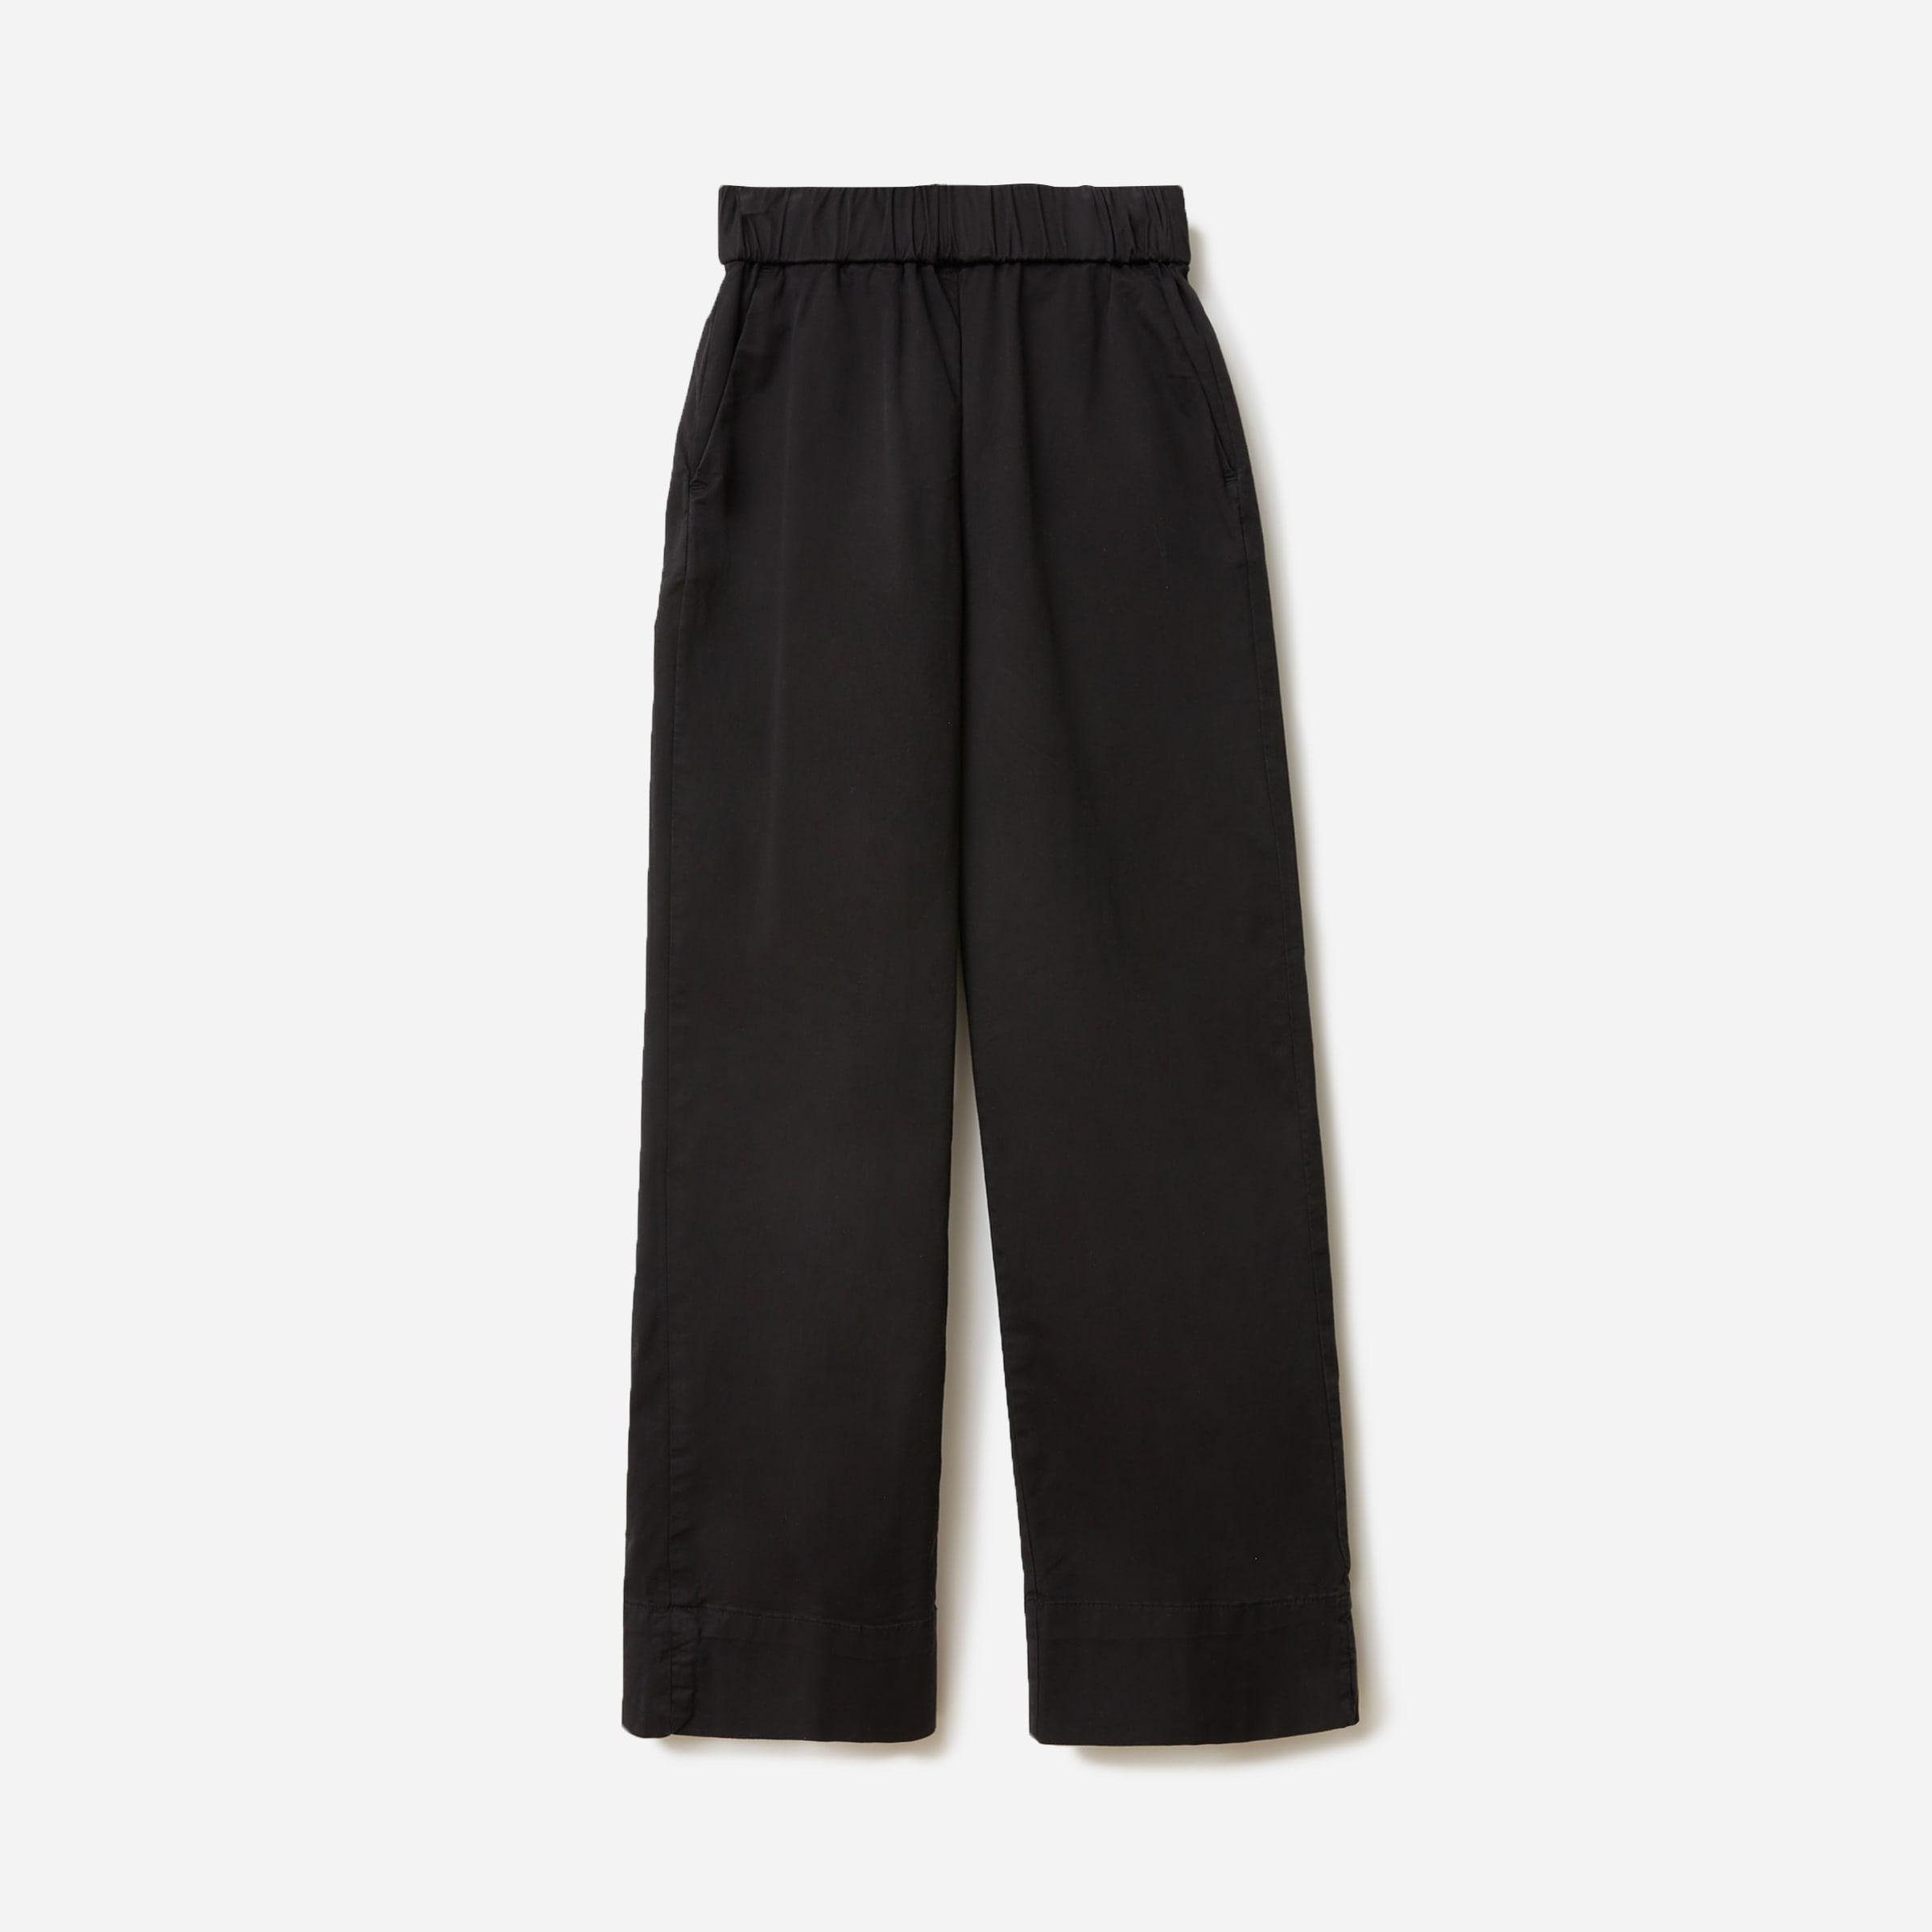 The Easy Pant 5